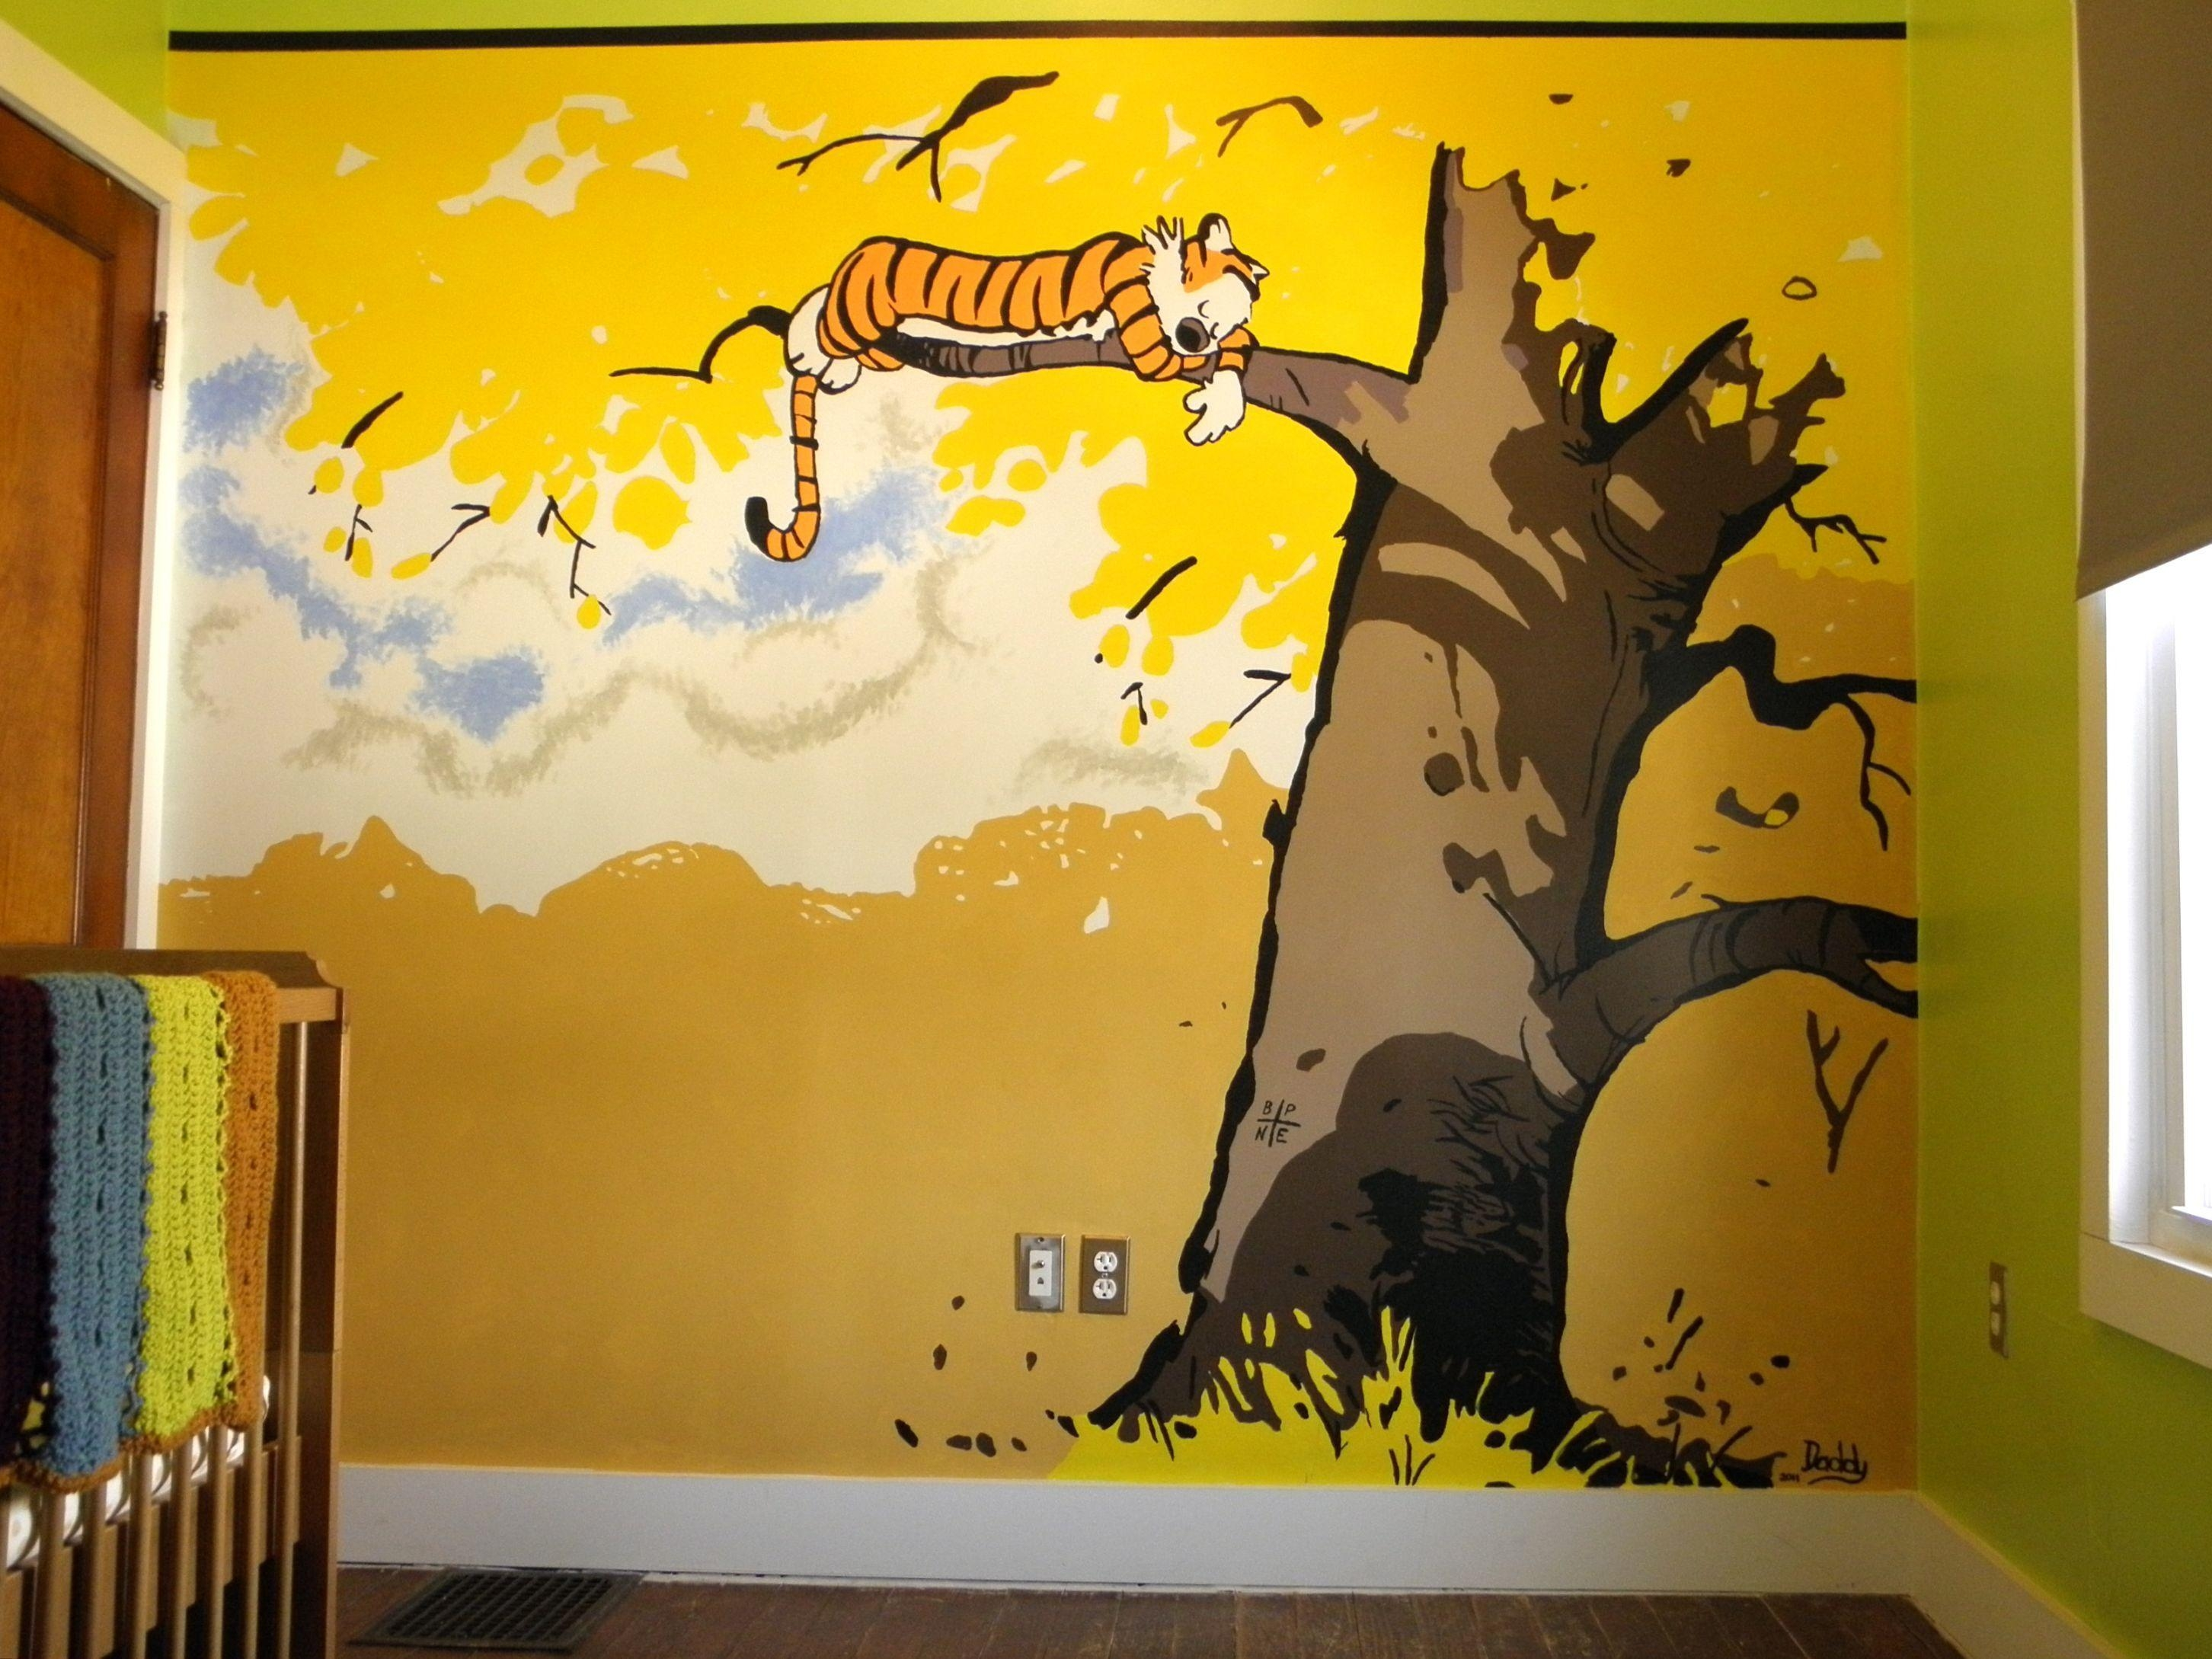 Magnificent Calvin And Hobbes Wall Art Image Collection - The Wall ...